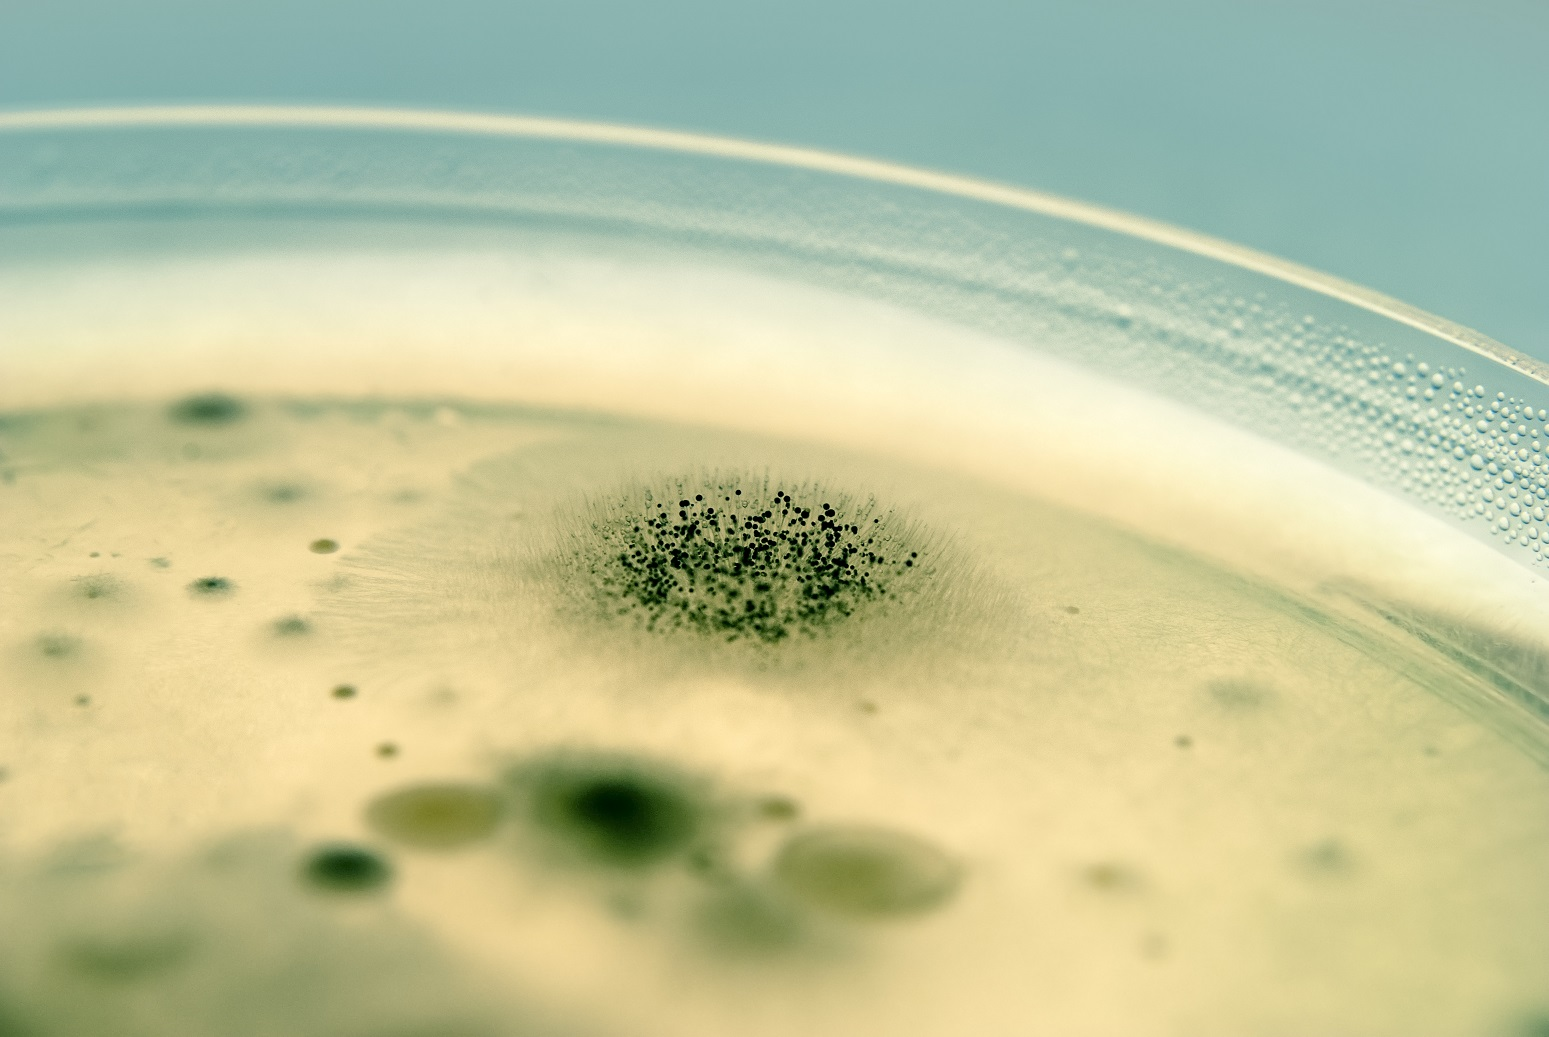 mold and bacteria